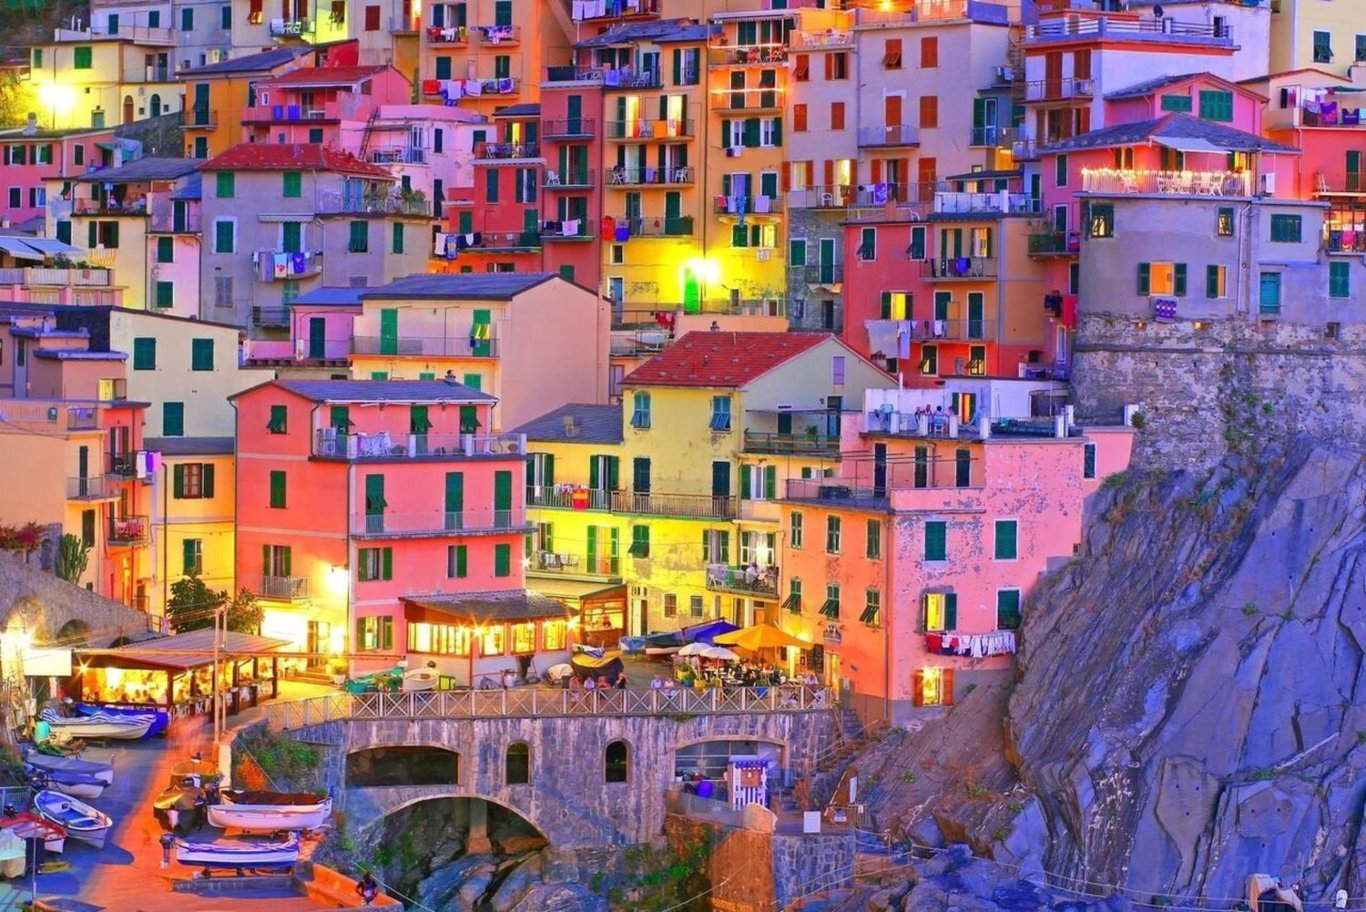 7-Day Cinque Terre Hiking Adventure - Italy Itinerary